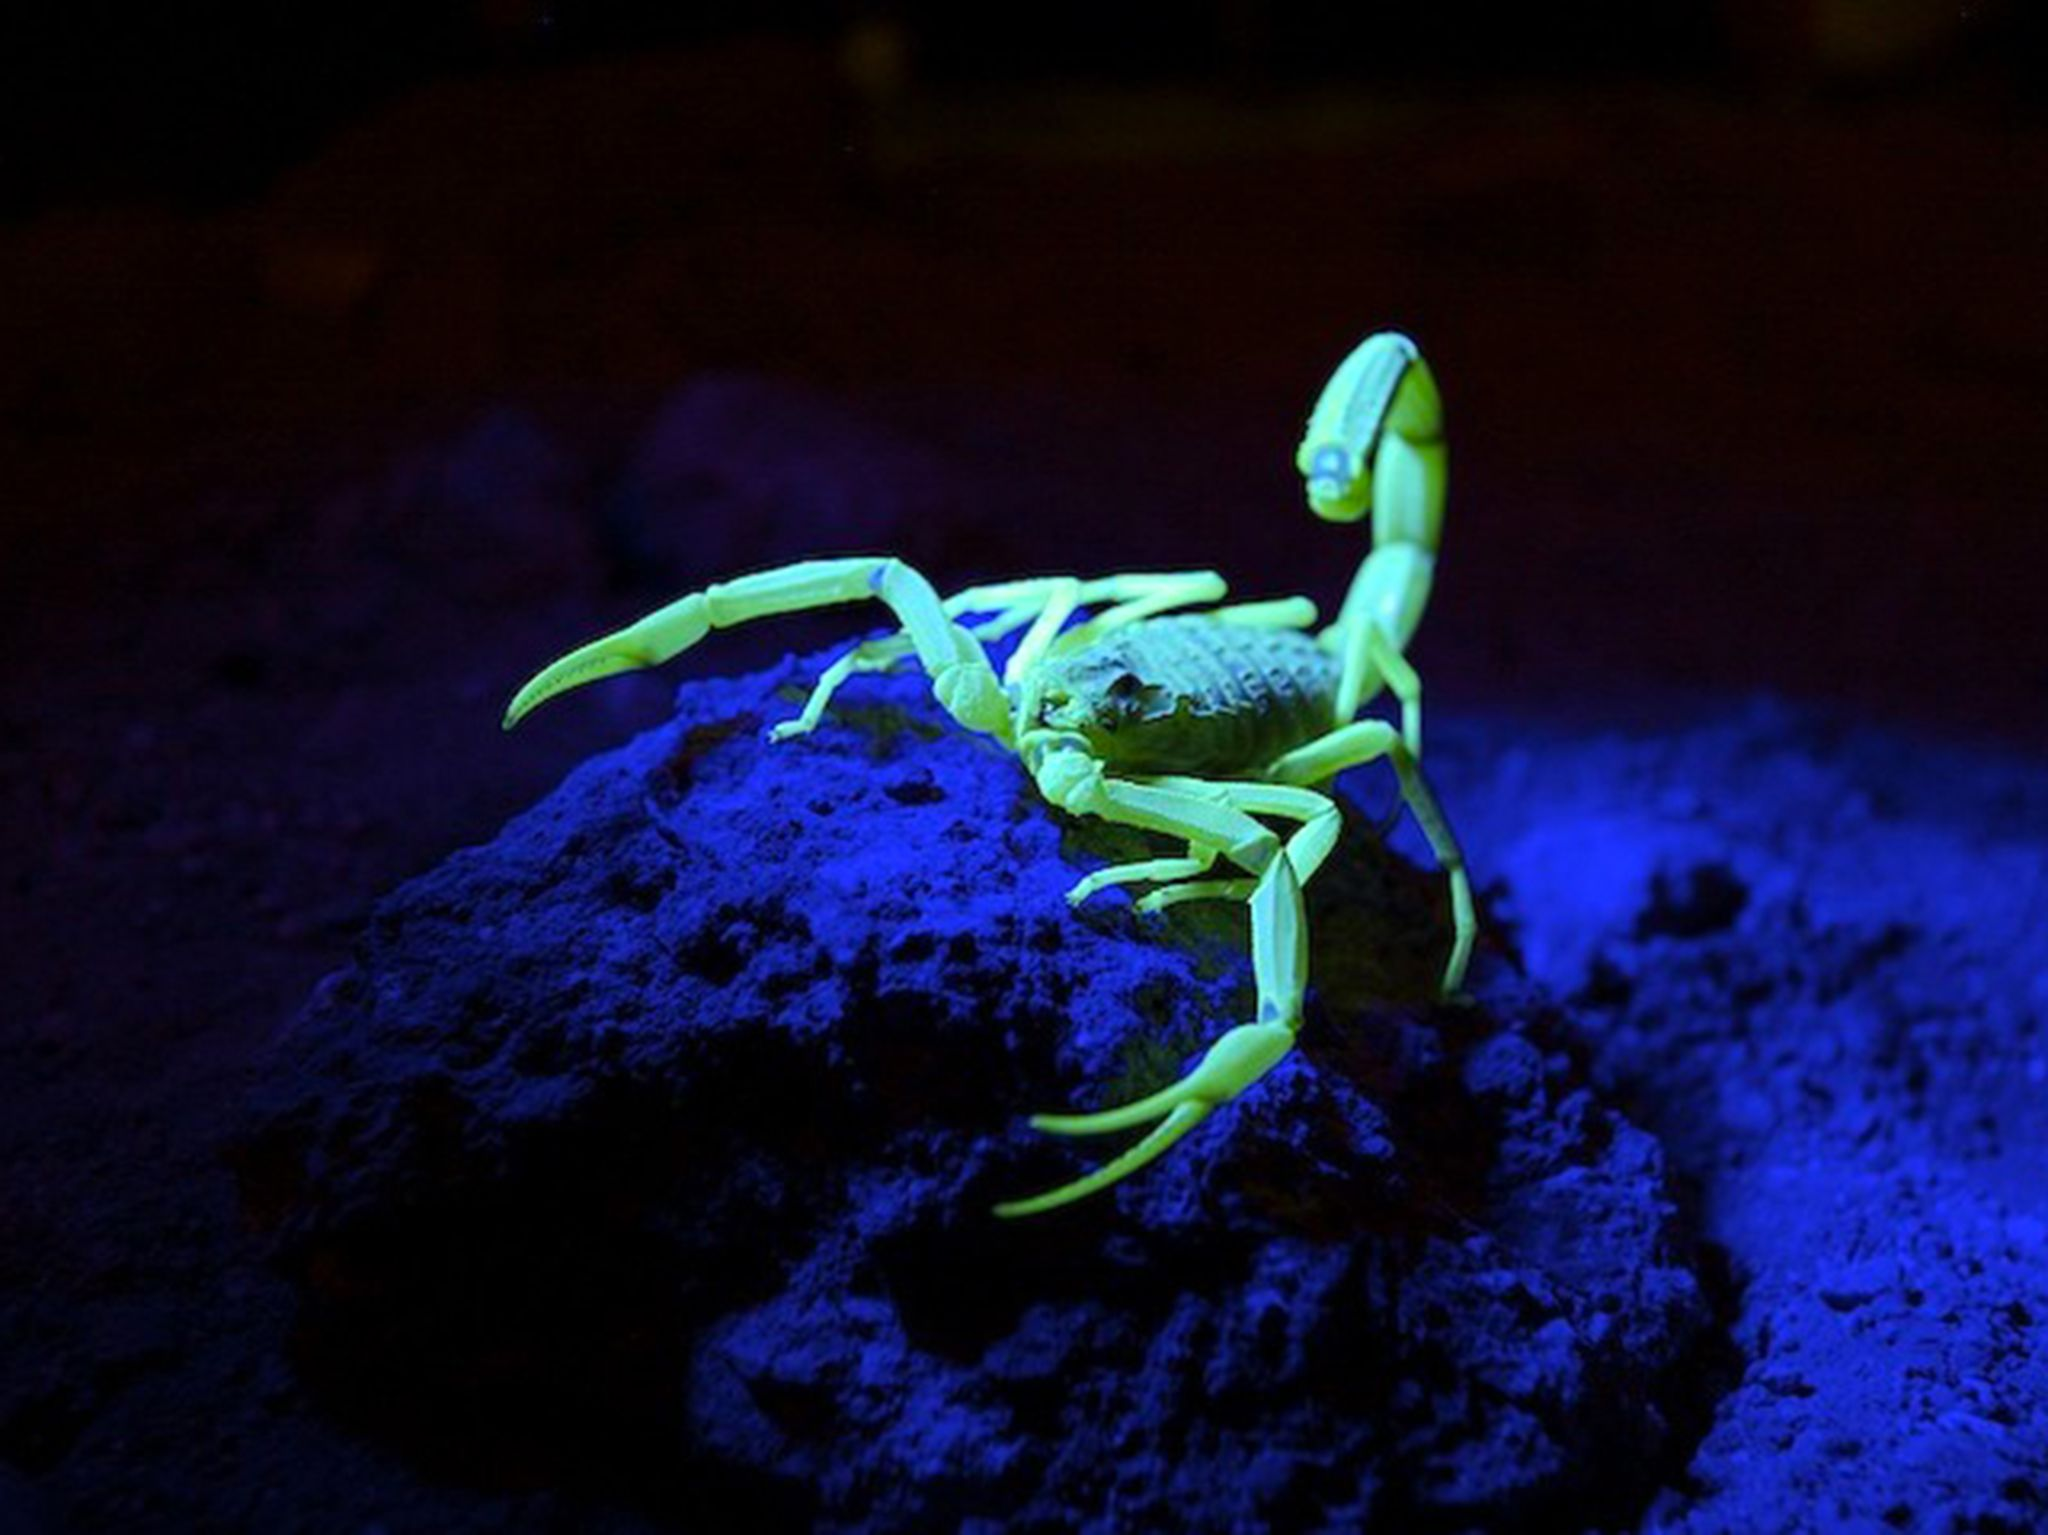 The death stalker scorpion glows underneath black light. This image is from Bite, Sting, Kill. [Photo of the day - آوریل 2017]